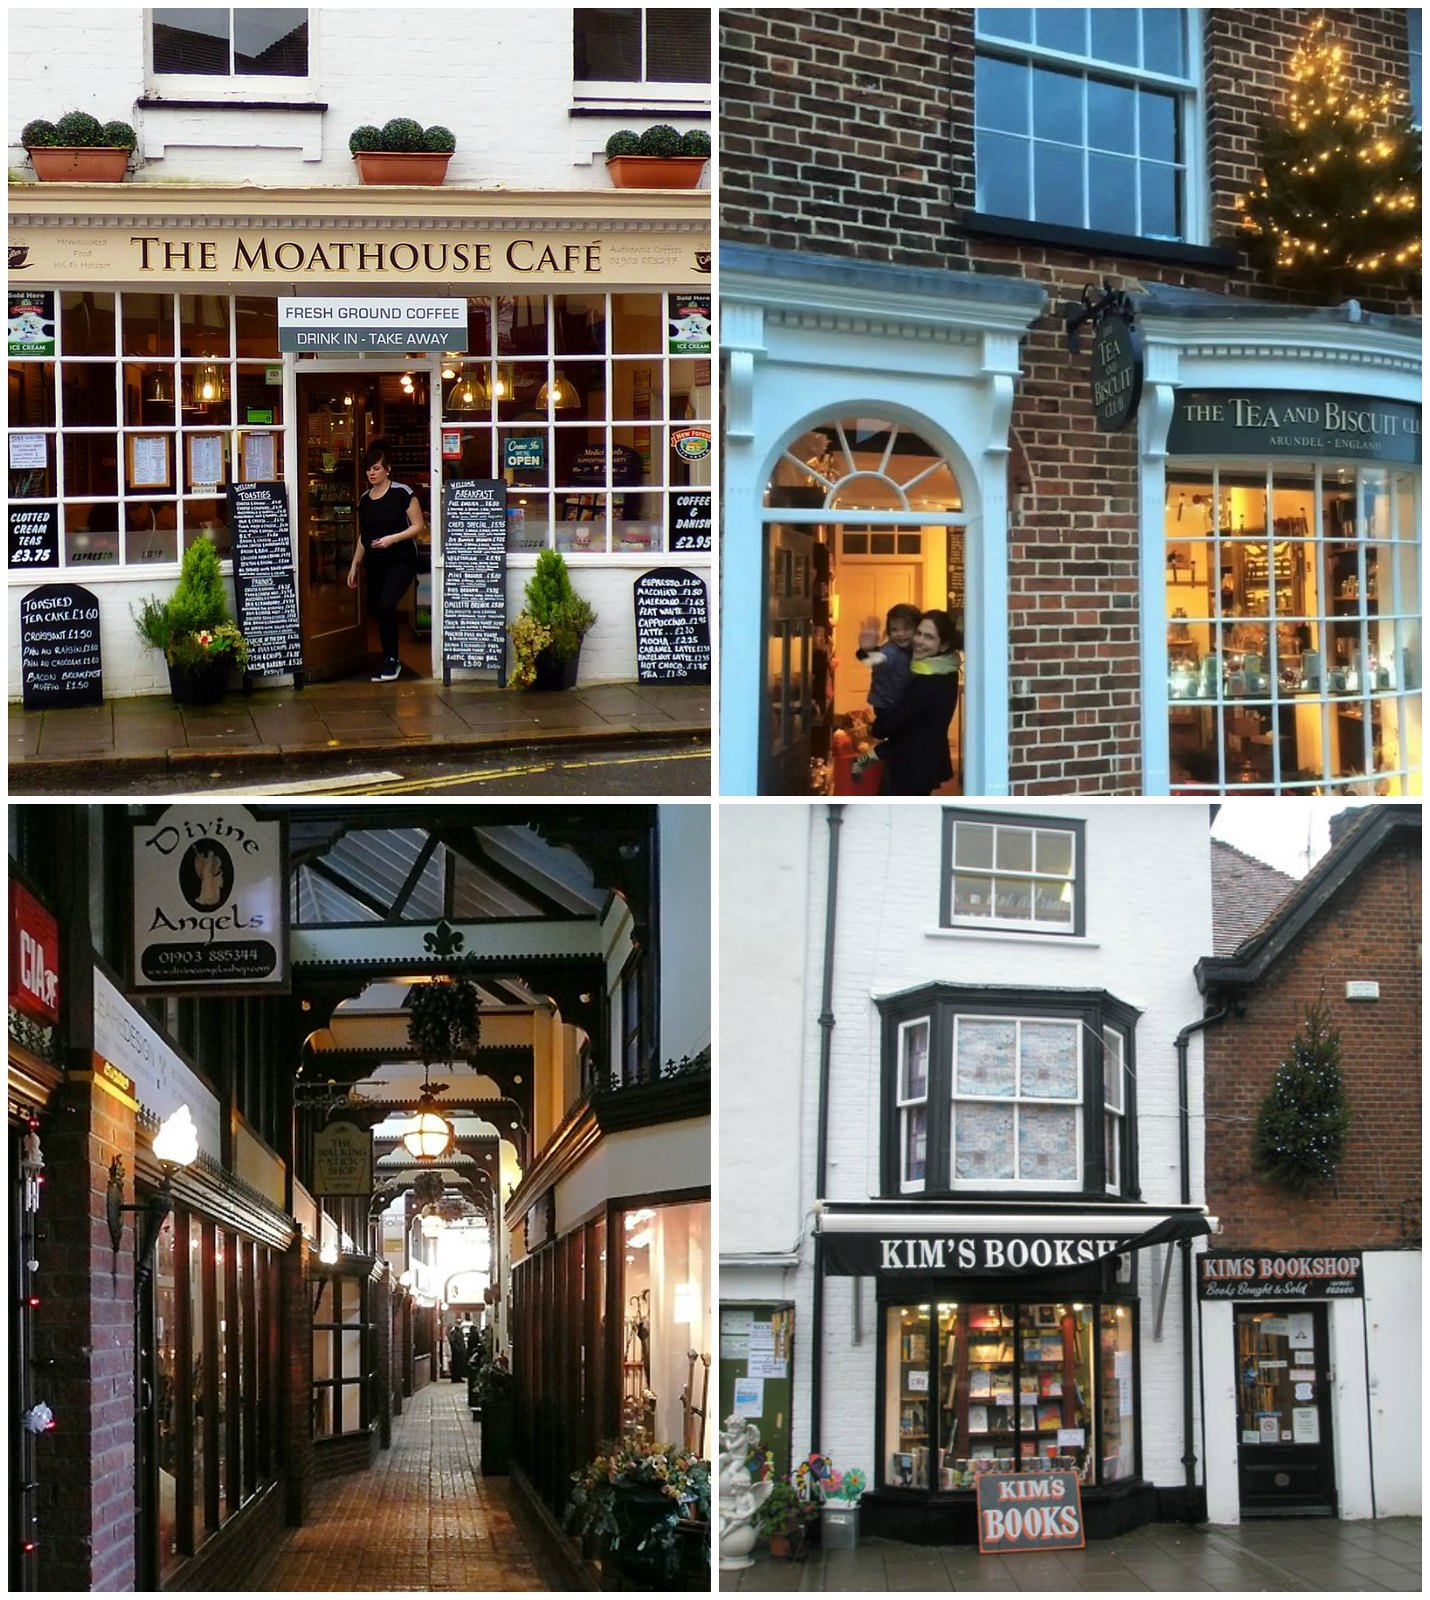 Top left clockwise: The Moathouse Cafe (credit grassrootsgrounds); The Tea and Biscuit Club; Shopping Arcade, Tarrant Street (credit Roger Kidd); Kim's Bookshop (credit Basher Eyre)